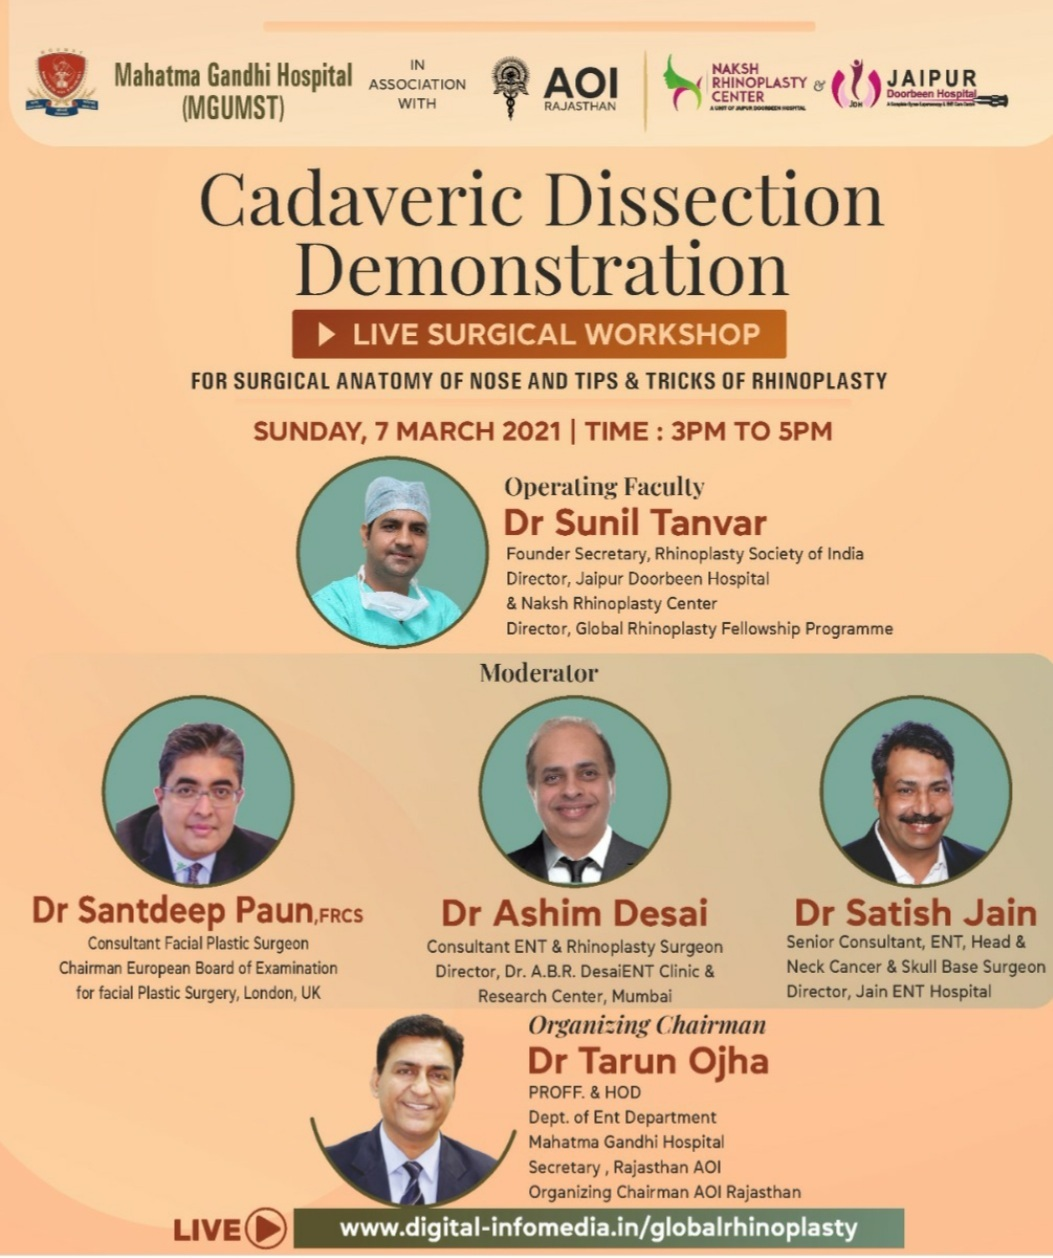 Cadaveric Dissection Demonstration